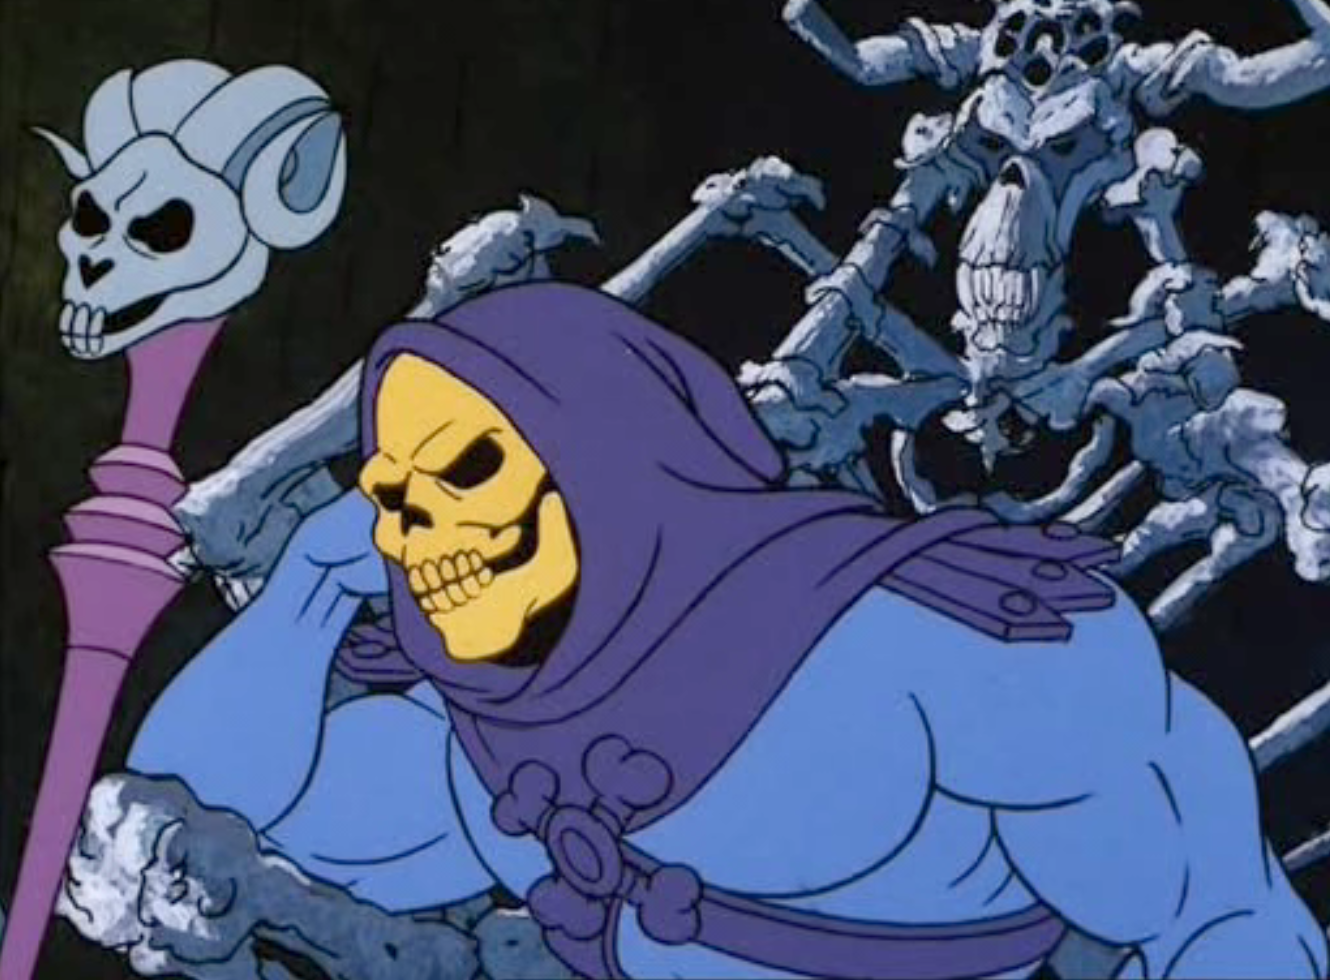 It is I Skeletor, welcome to a new year led by me!